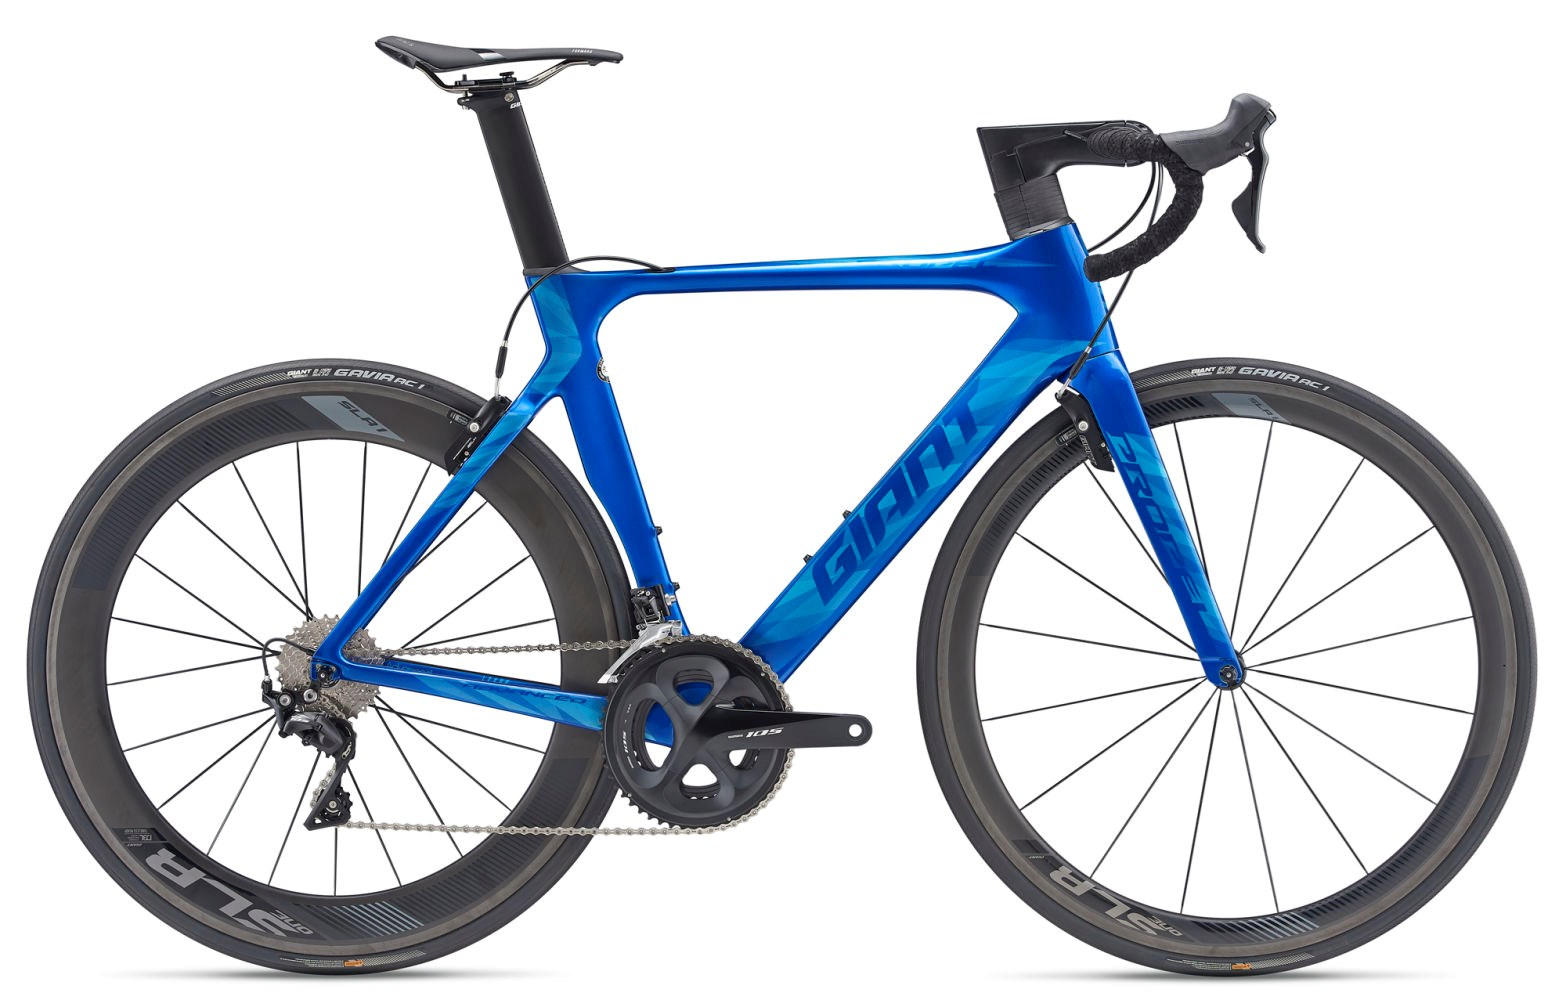 534807319f6 2019 Giant Propel Advanced Pro 2 Road Bike in Blue pennyfarthing ...